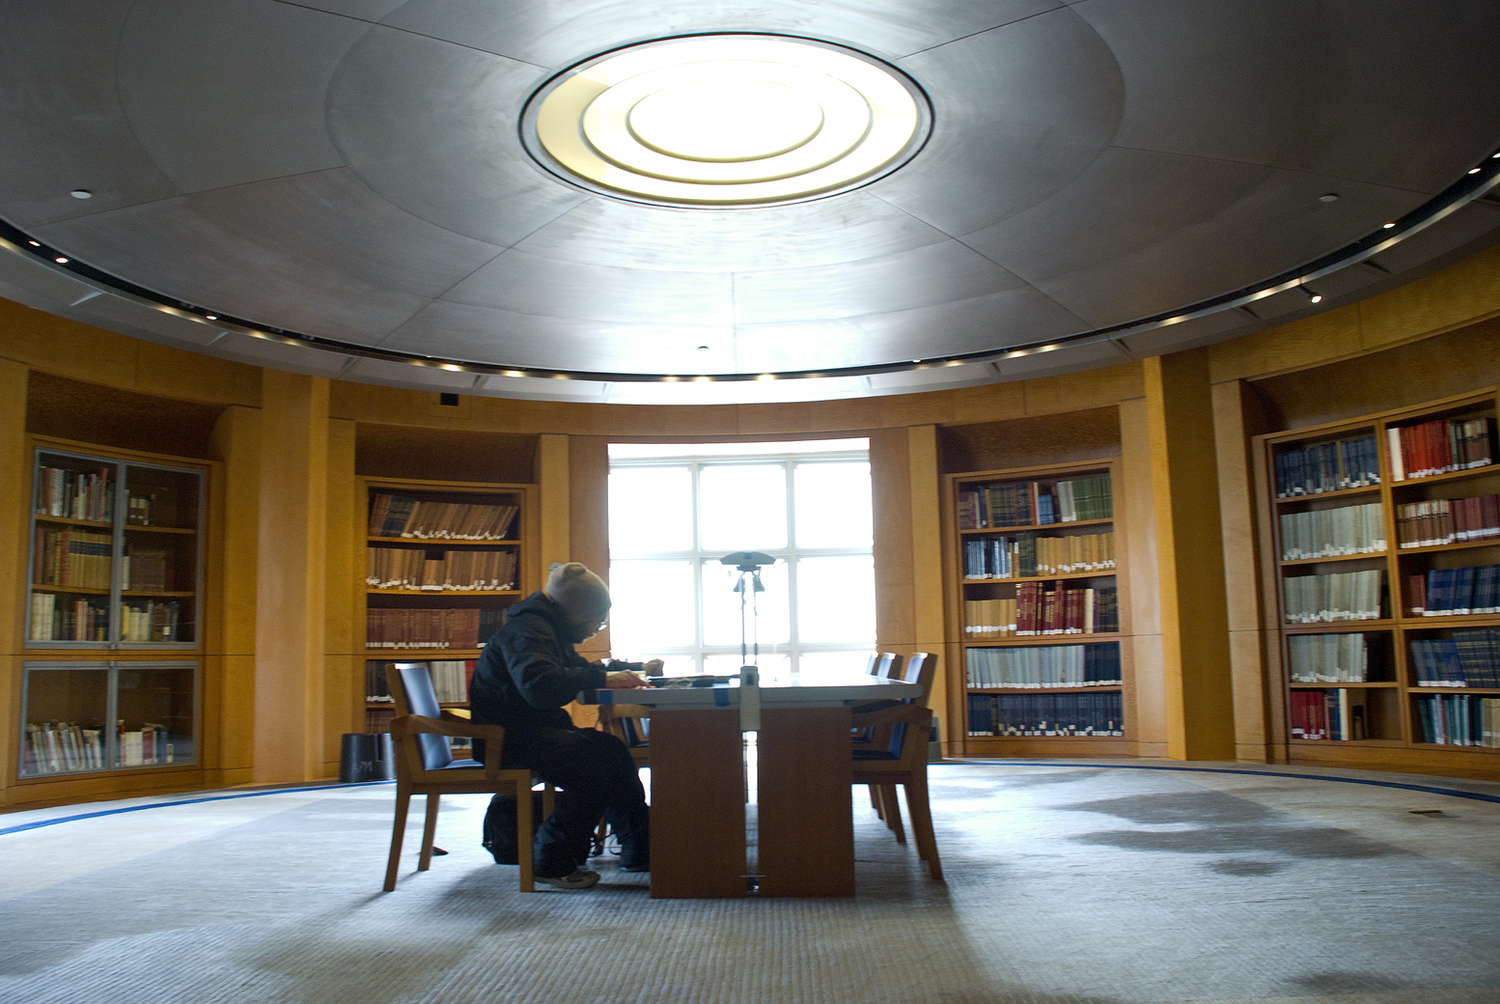 Rodrigo Yanez studies music theory at the San Francisco Public Library's main branch.